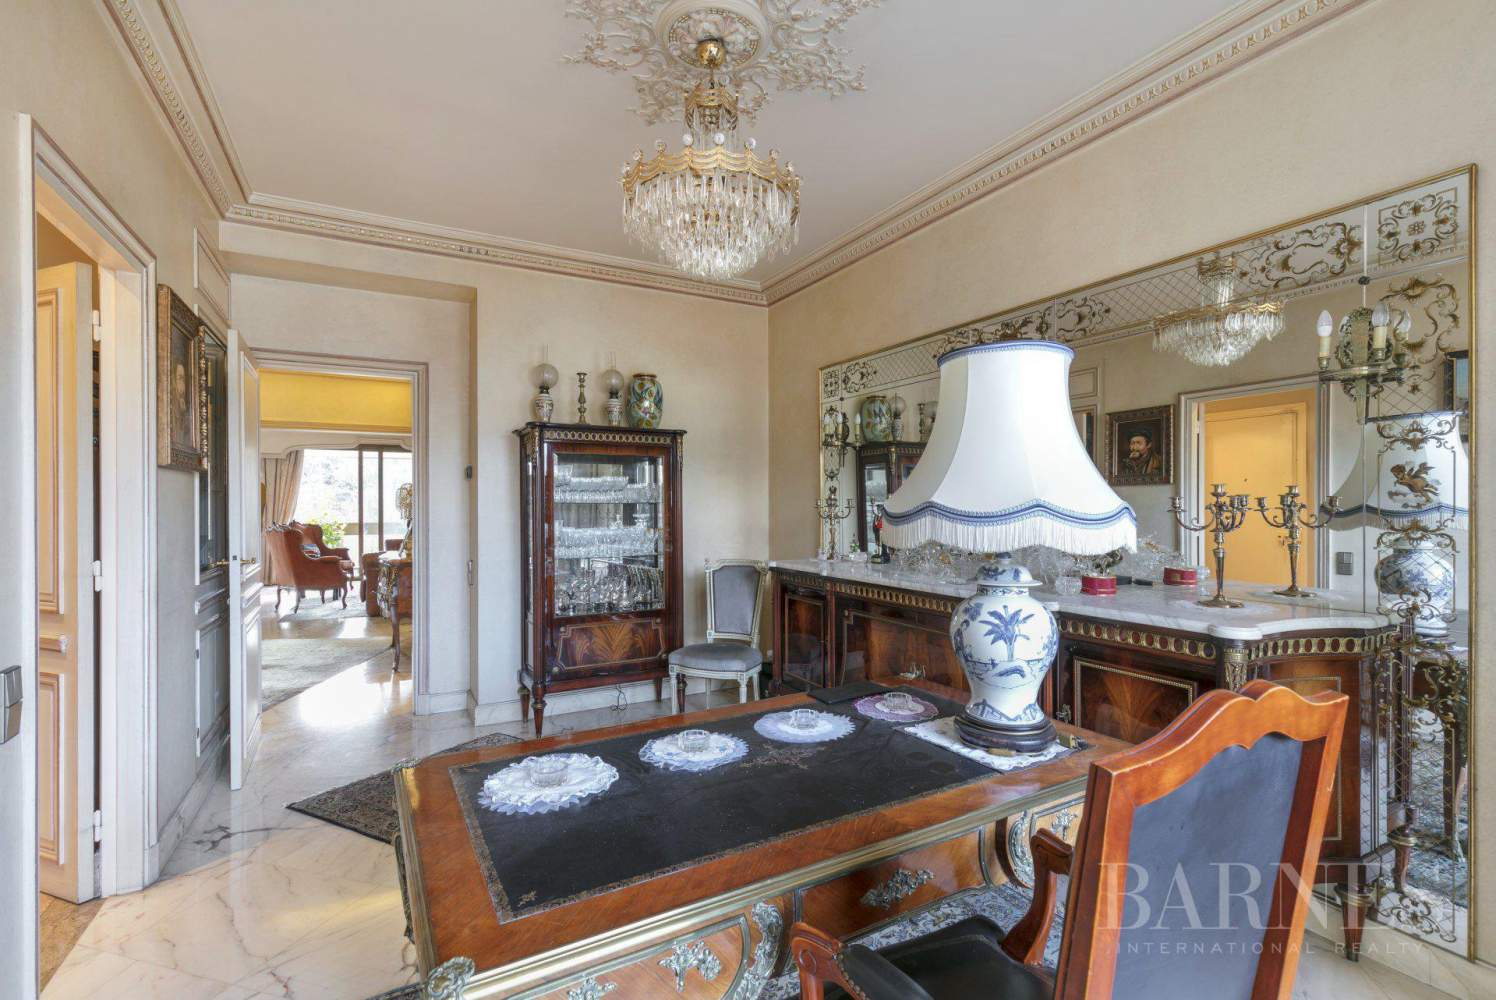 NEUILLY - BOIS - APPARTEMENT 5 PIECES - BALCONS LARGES - VUES PANORAMIQUES picture 11